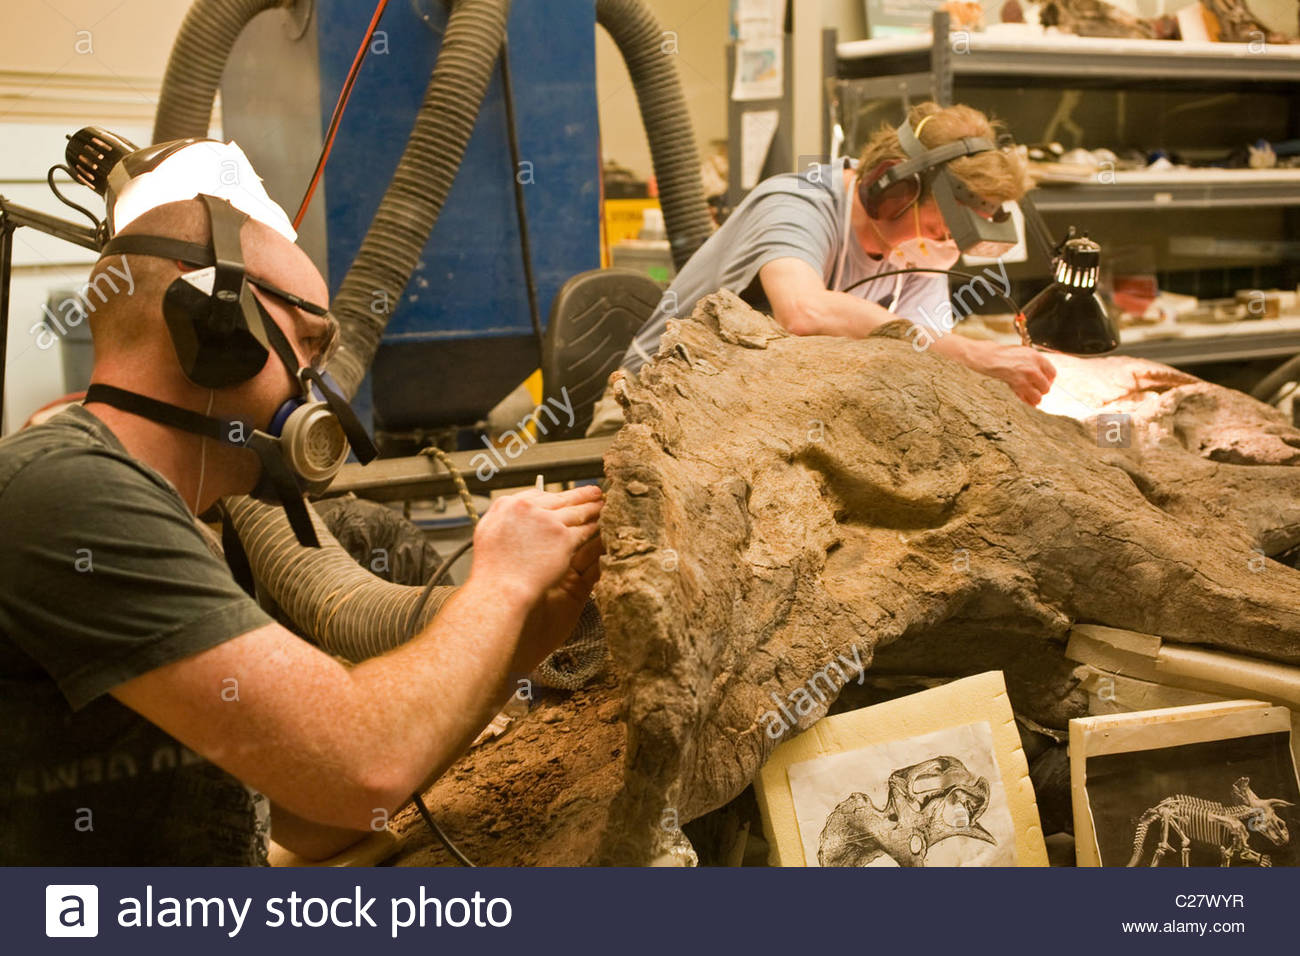 A paleontologist  cleans a dinosaur skeleton in a laboratory. - Stock Image